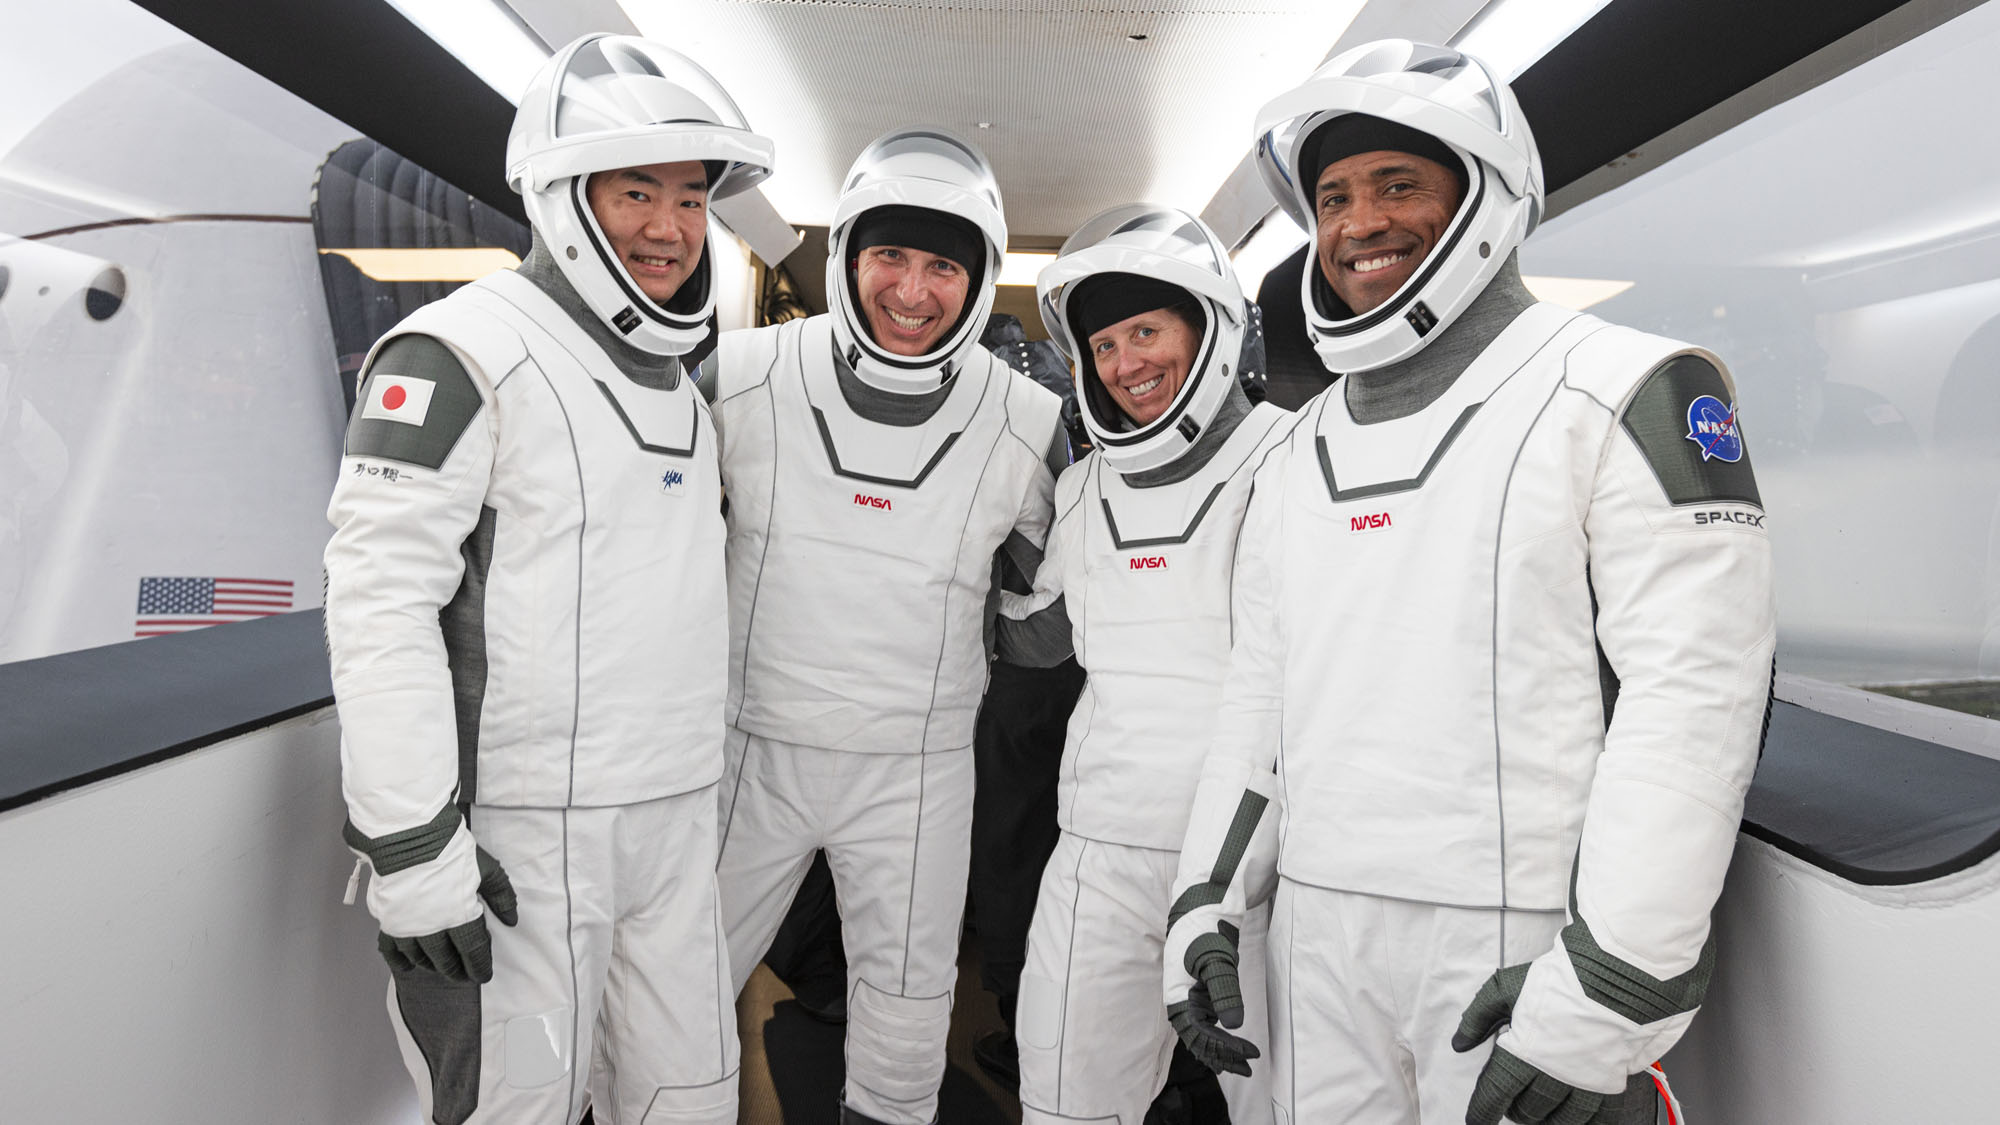 Meet Crew-1: These are the 4 astronauts who are flying on SpaceX's next Crew Dragon